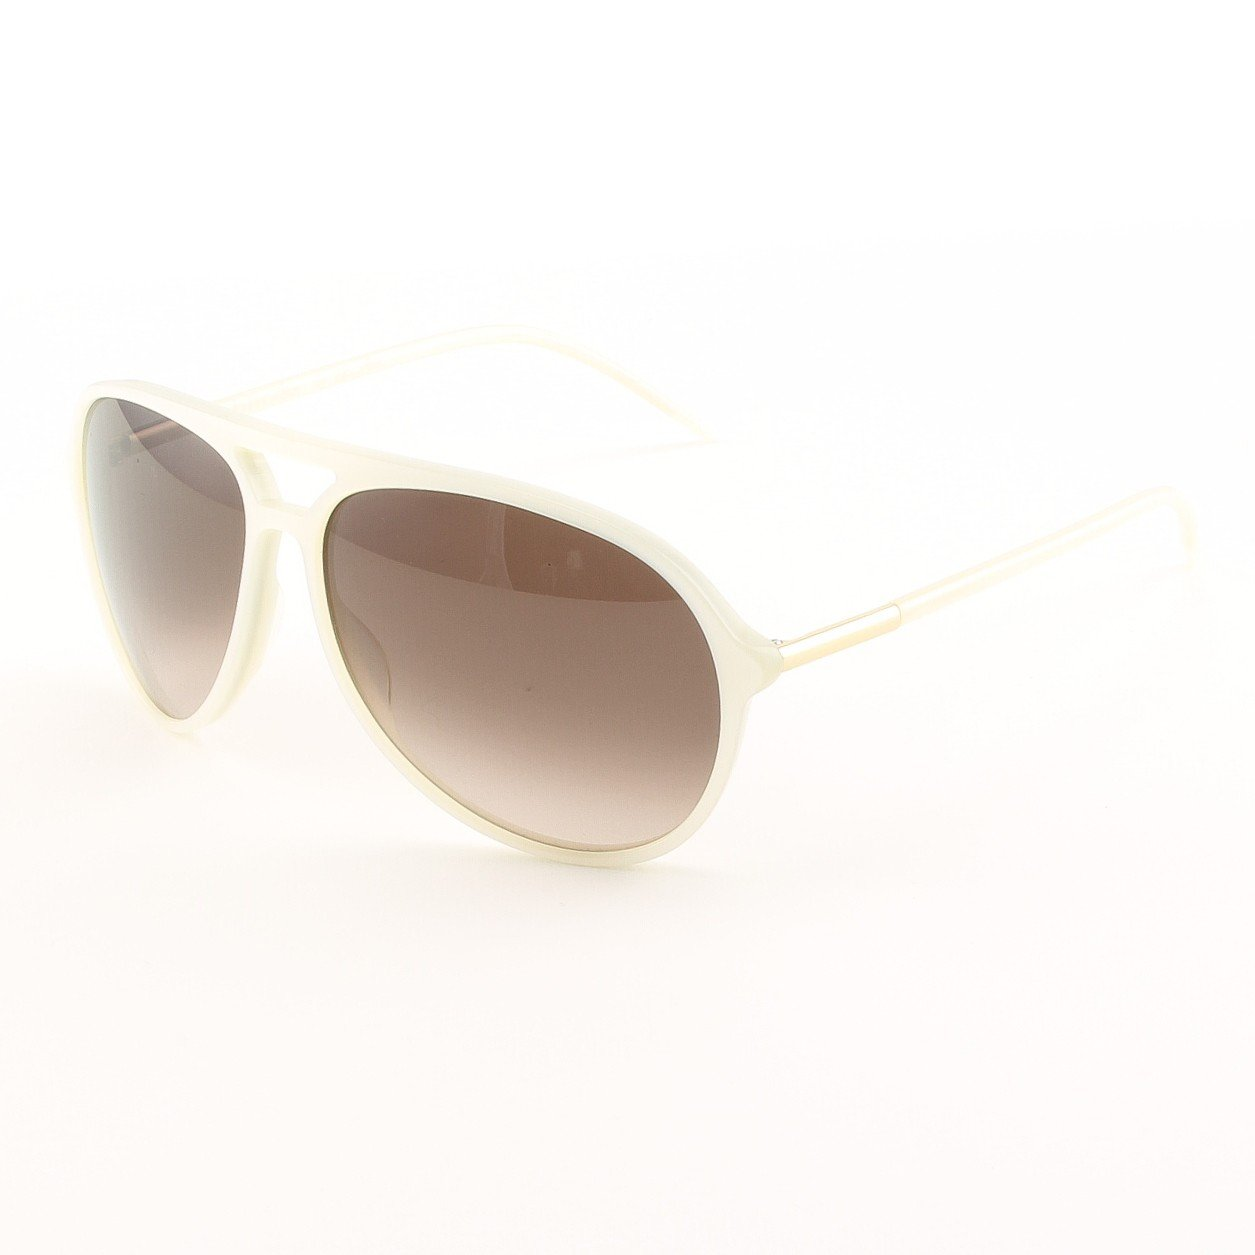 Blinde Joy Rides Men's Sunglasses Col. White Pearl with Brown Gradient Lenses